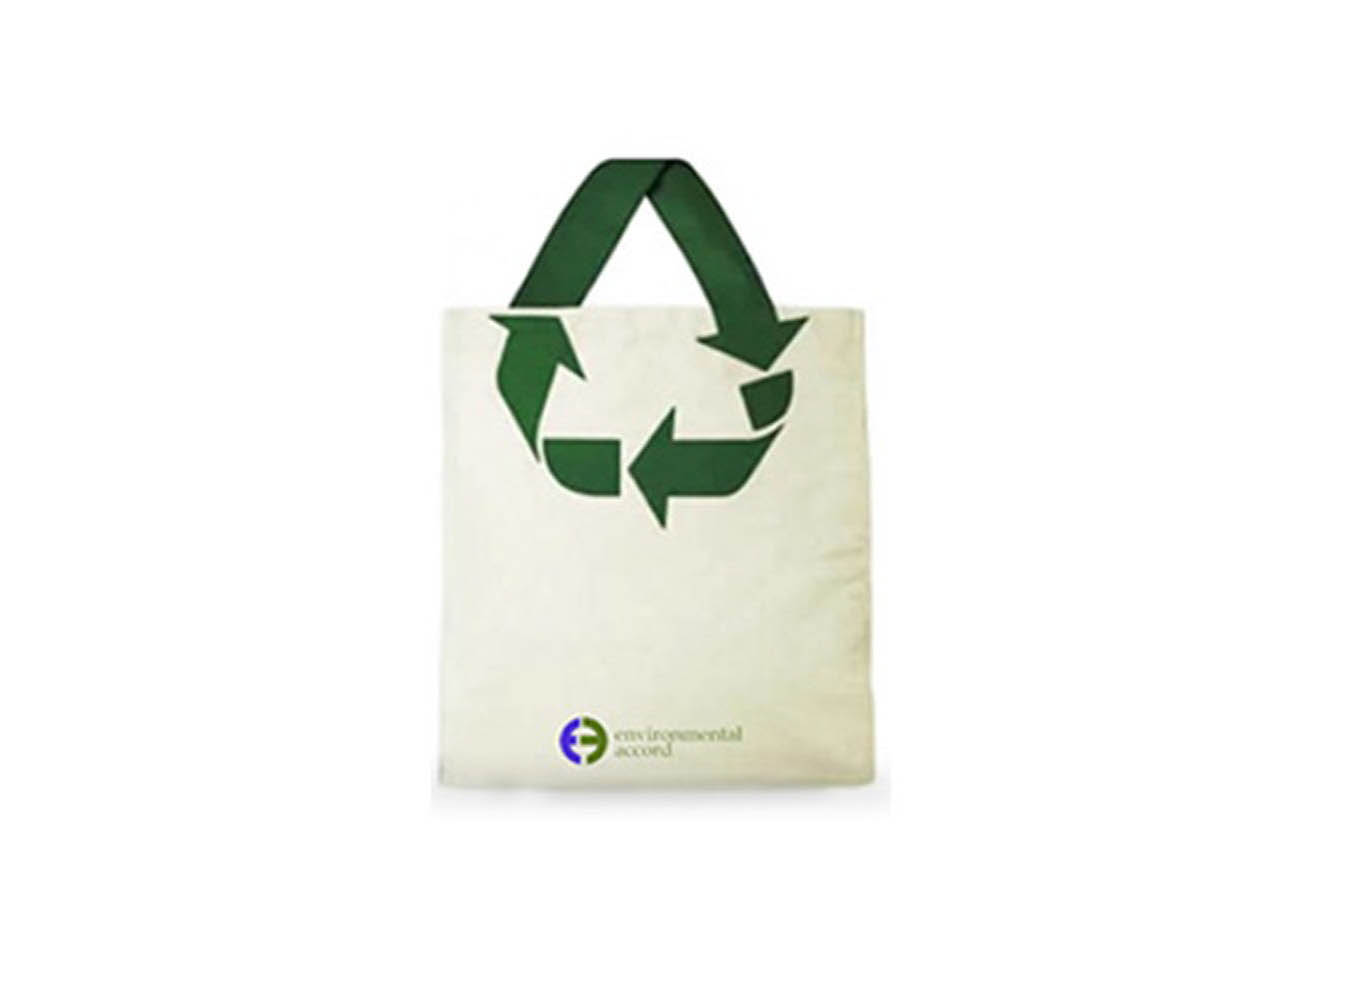 Eco-Friendly Recycle Logo Design Promotional Tote Bag